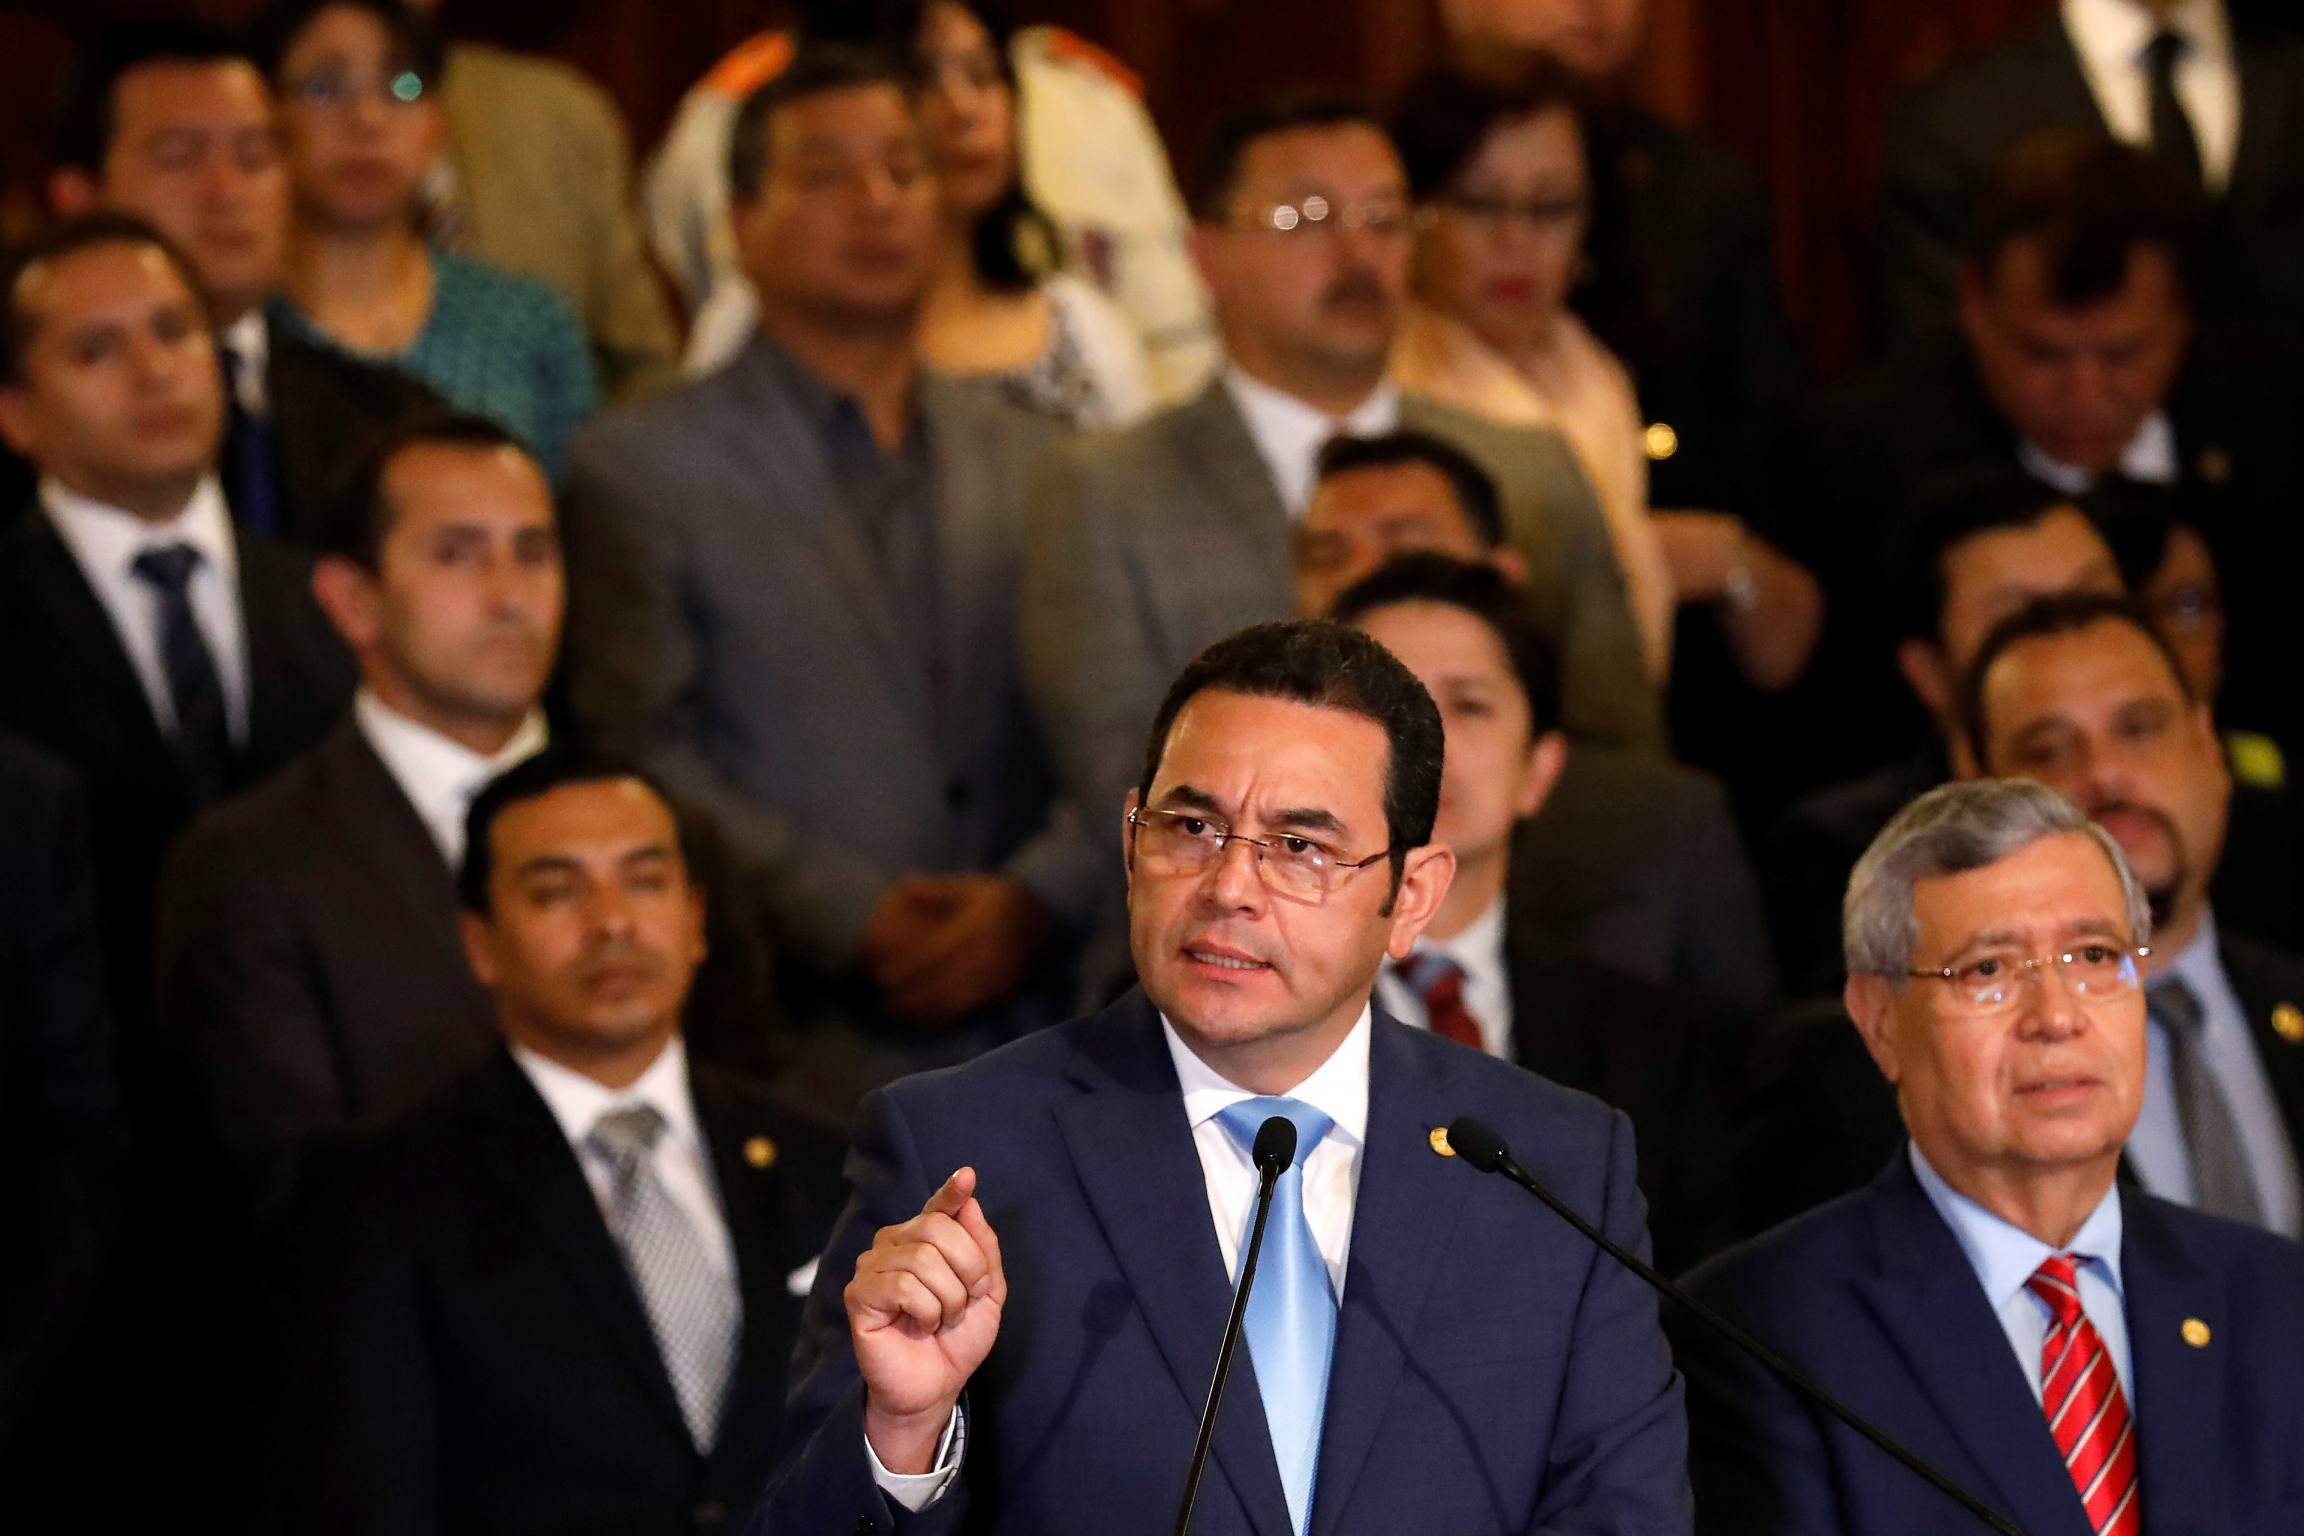 Guatemalan President Jimmy Morales holds a news conference to announce that it was ending the mandate of the UN-backed anti-graft commission, the CICIG, in Guatemala City, Guatemala, January 7, 2019.